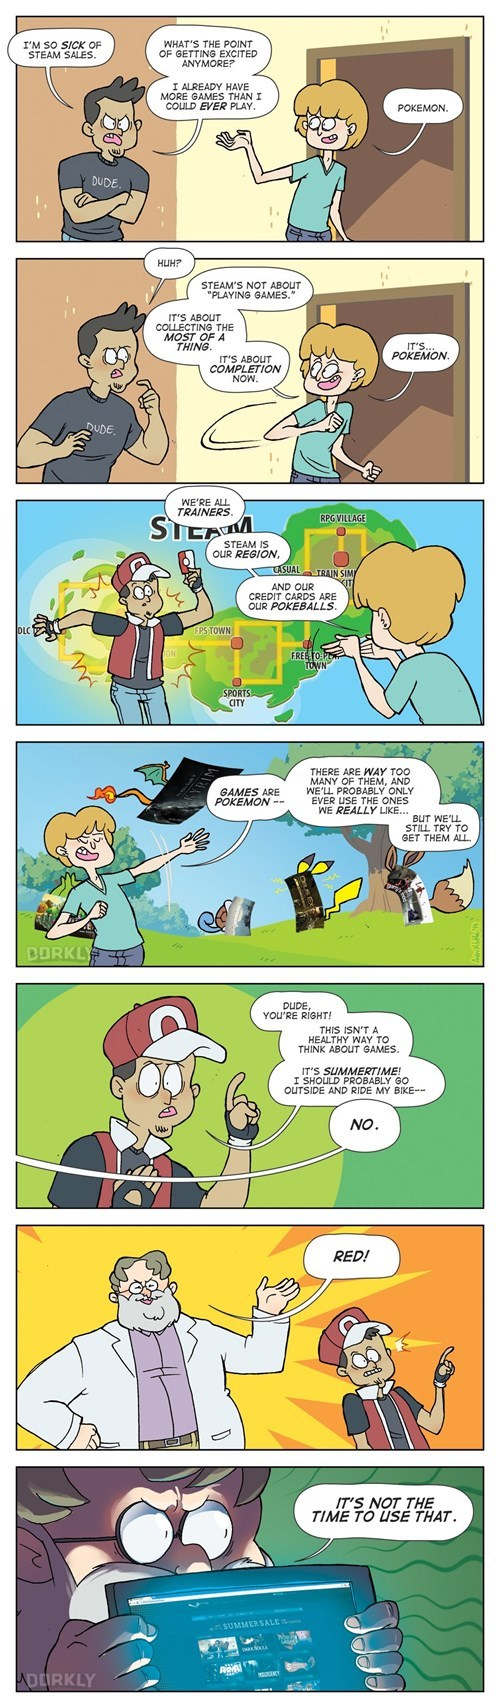 dorkly,steam sales,steam,web comics